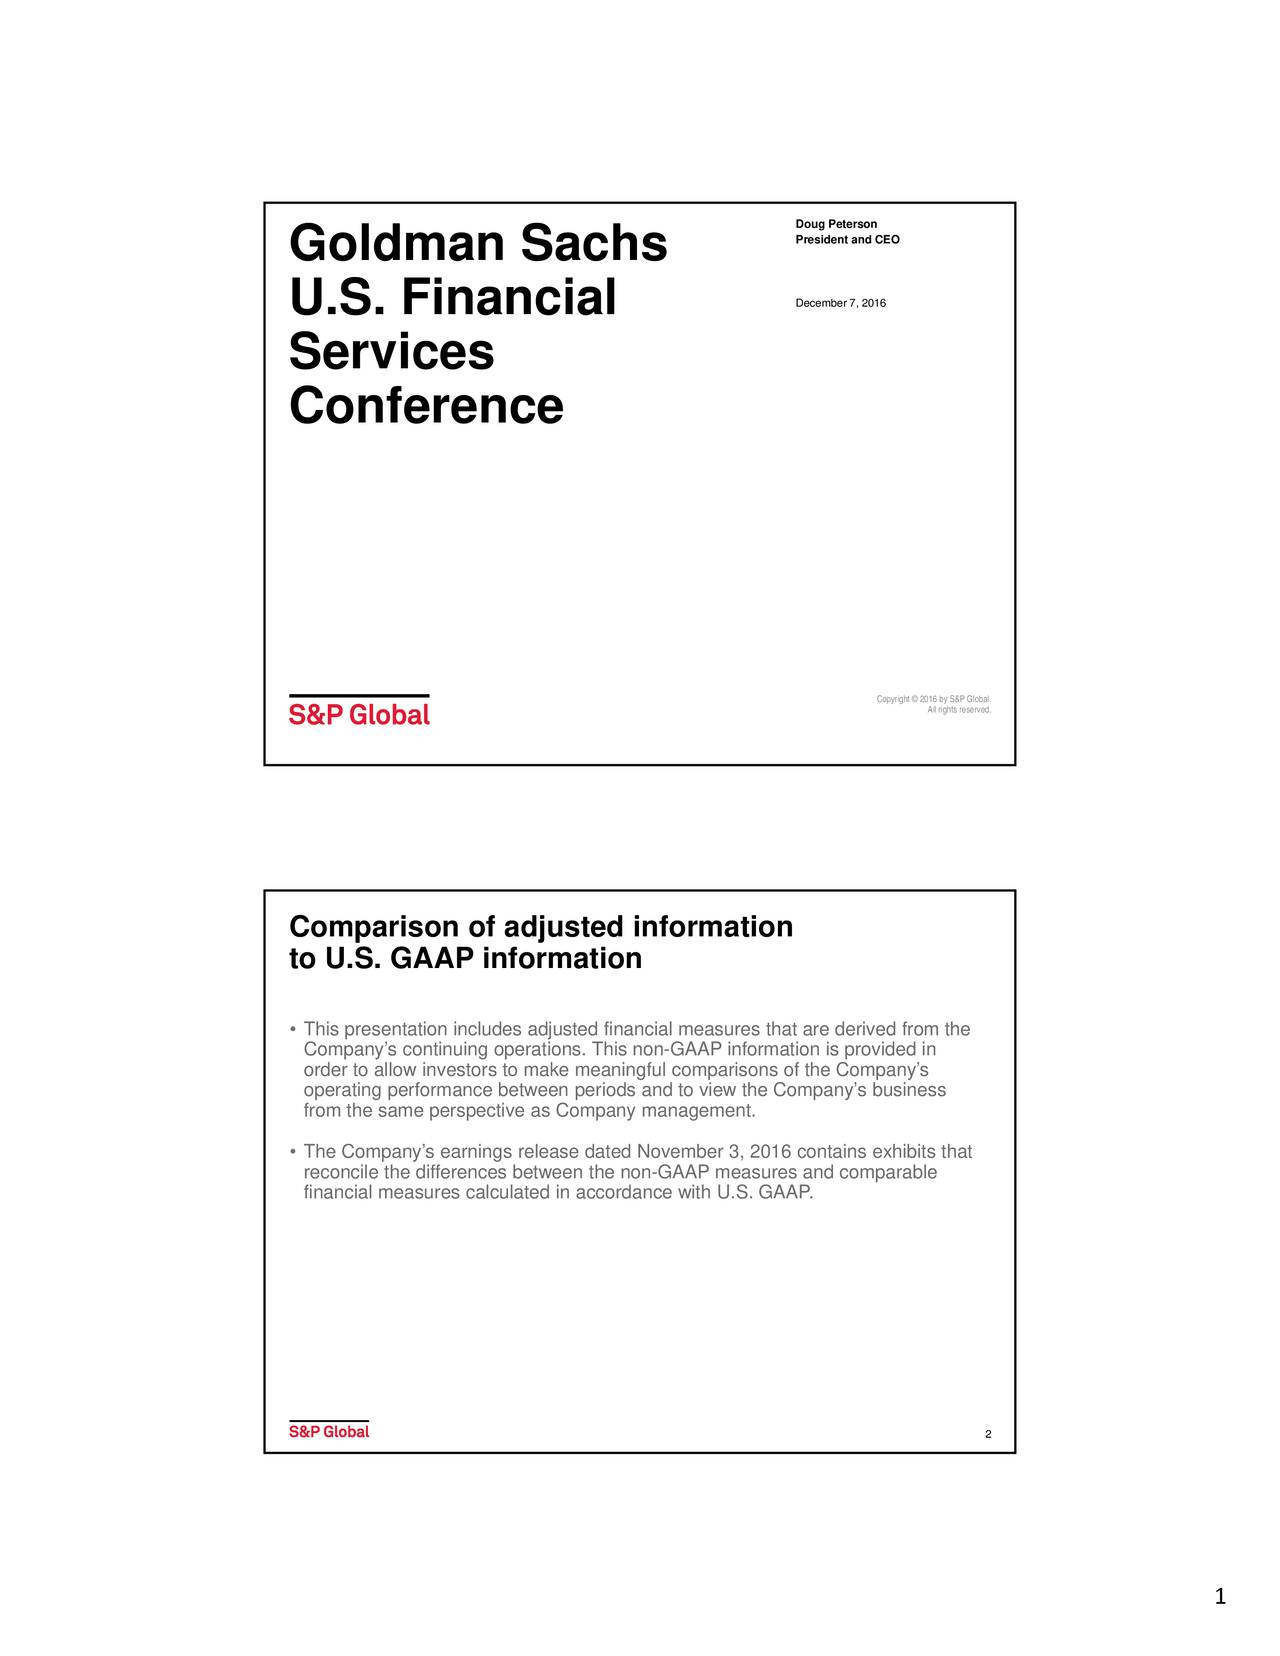 Goldman Sachs U.S. Financial December 7, 2016 Services Conference Copyright  2016 by S&P Global. All rights reserved. Comparison of adjusted information to U.S. GAAP information This presentation includes adjusted financial measures that are derived from the Companys continuing operations. This non-GAAP information is provided in order to allow investors to make meaningful comparisons of the Companys operating performance between periods and to view the Companys business from the same perspective as Company management. The Companys earnings release dated November 3, 2016 contains exhibits that financial measures calculated in accordance with U.S. GAAP. comparable 2 1